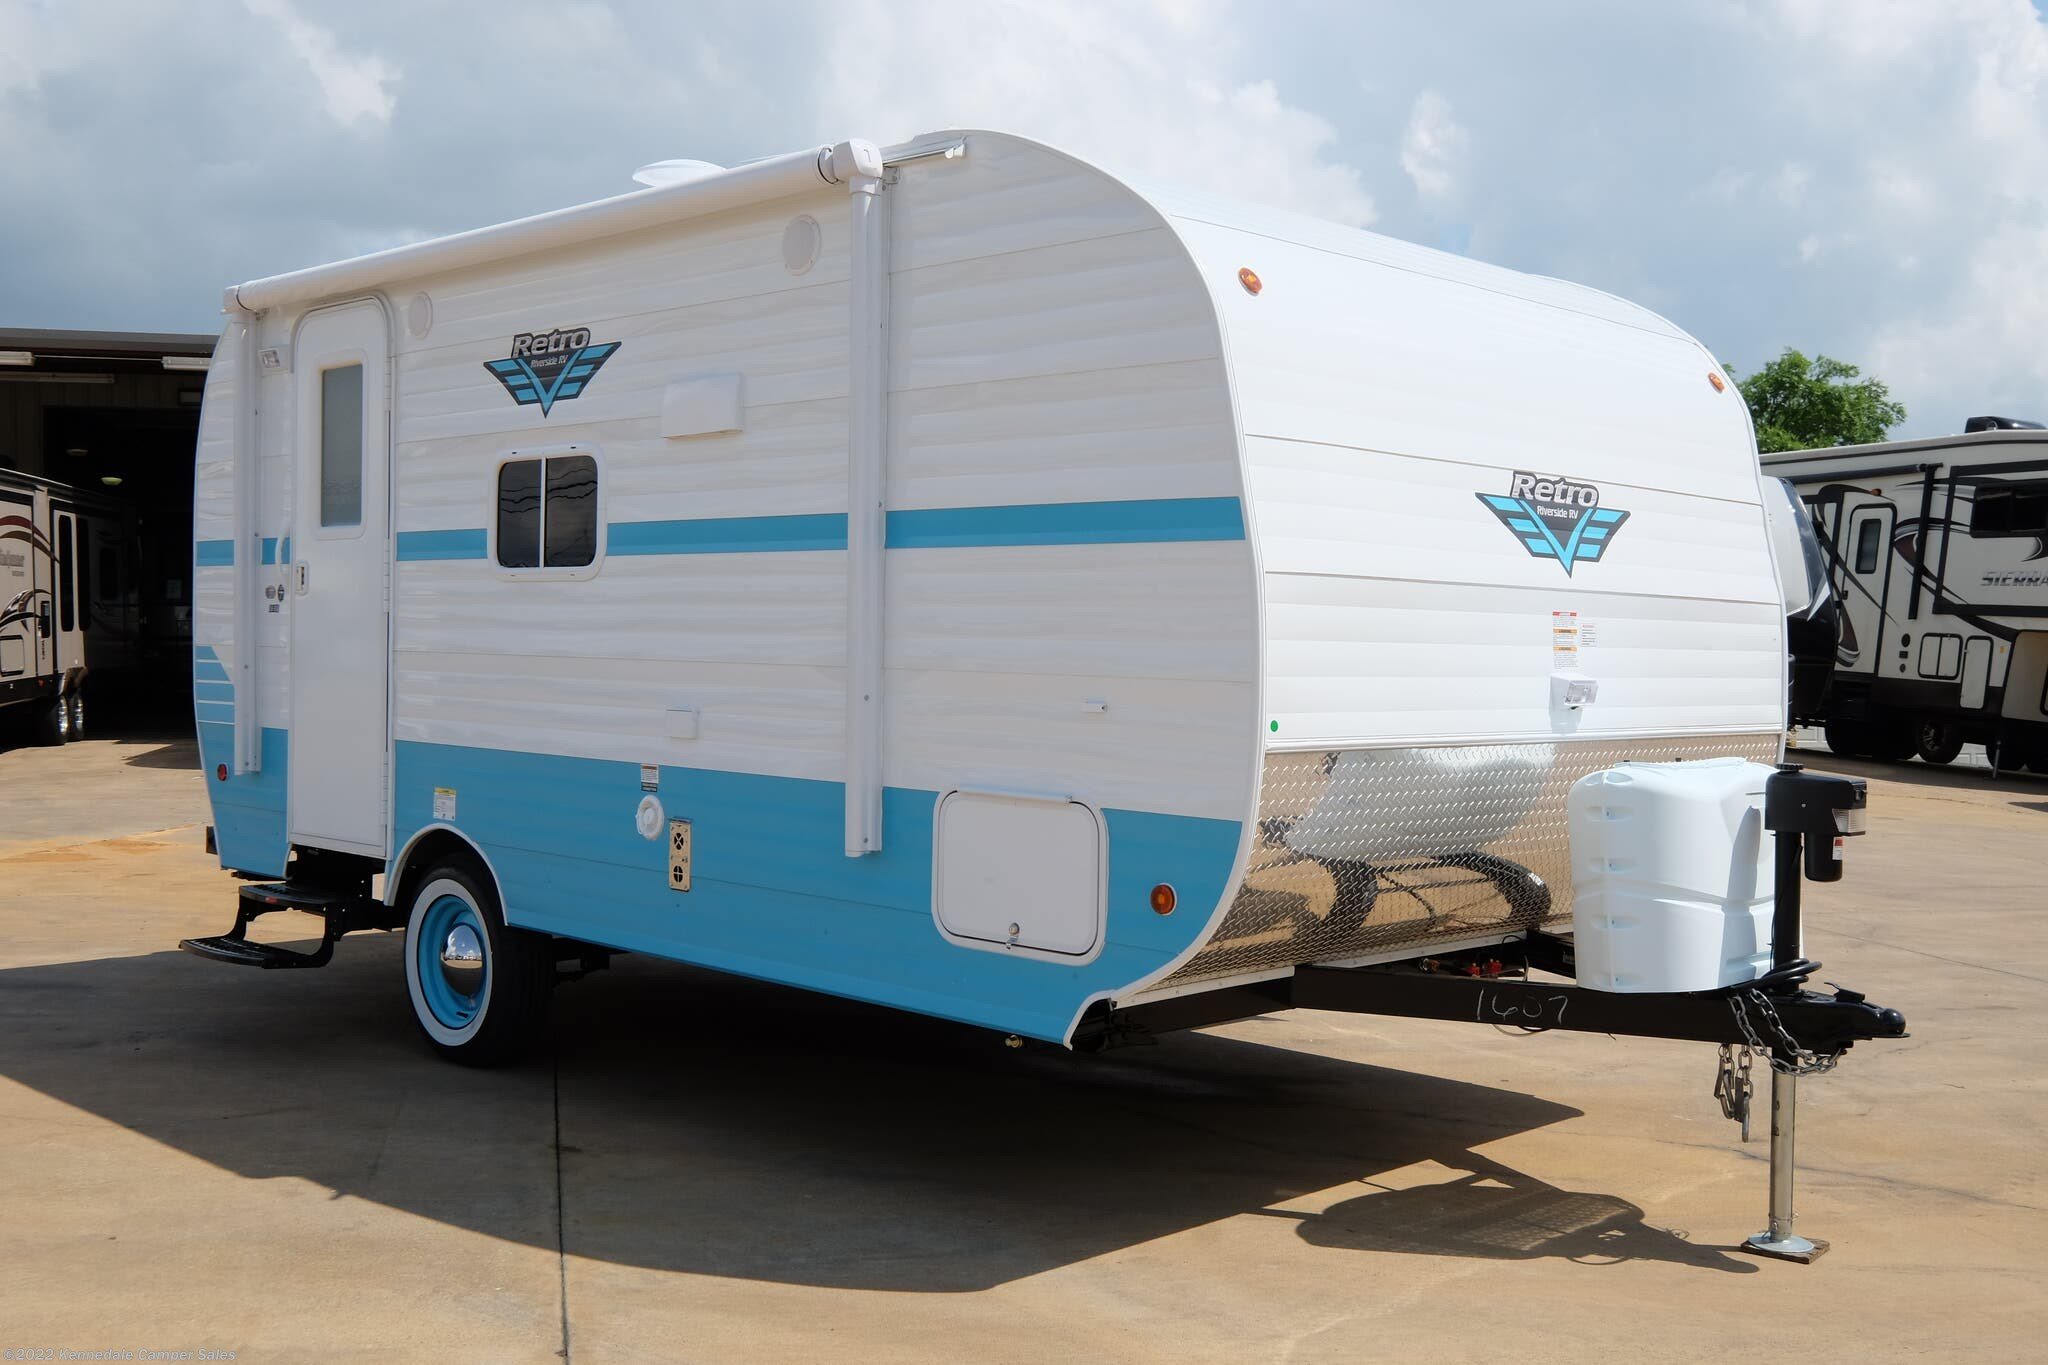 2020 Riverside Rv Rv Retro 169r For Sale In Kennedale Tx 76060 001607